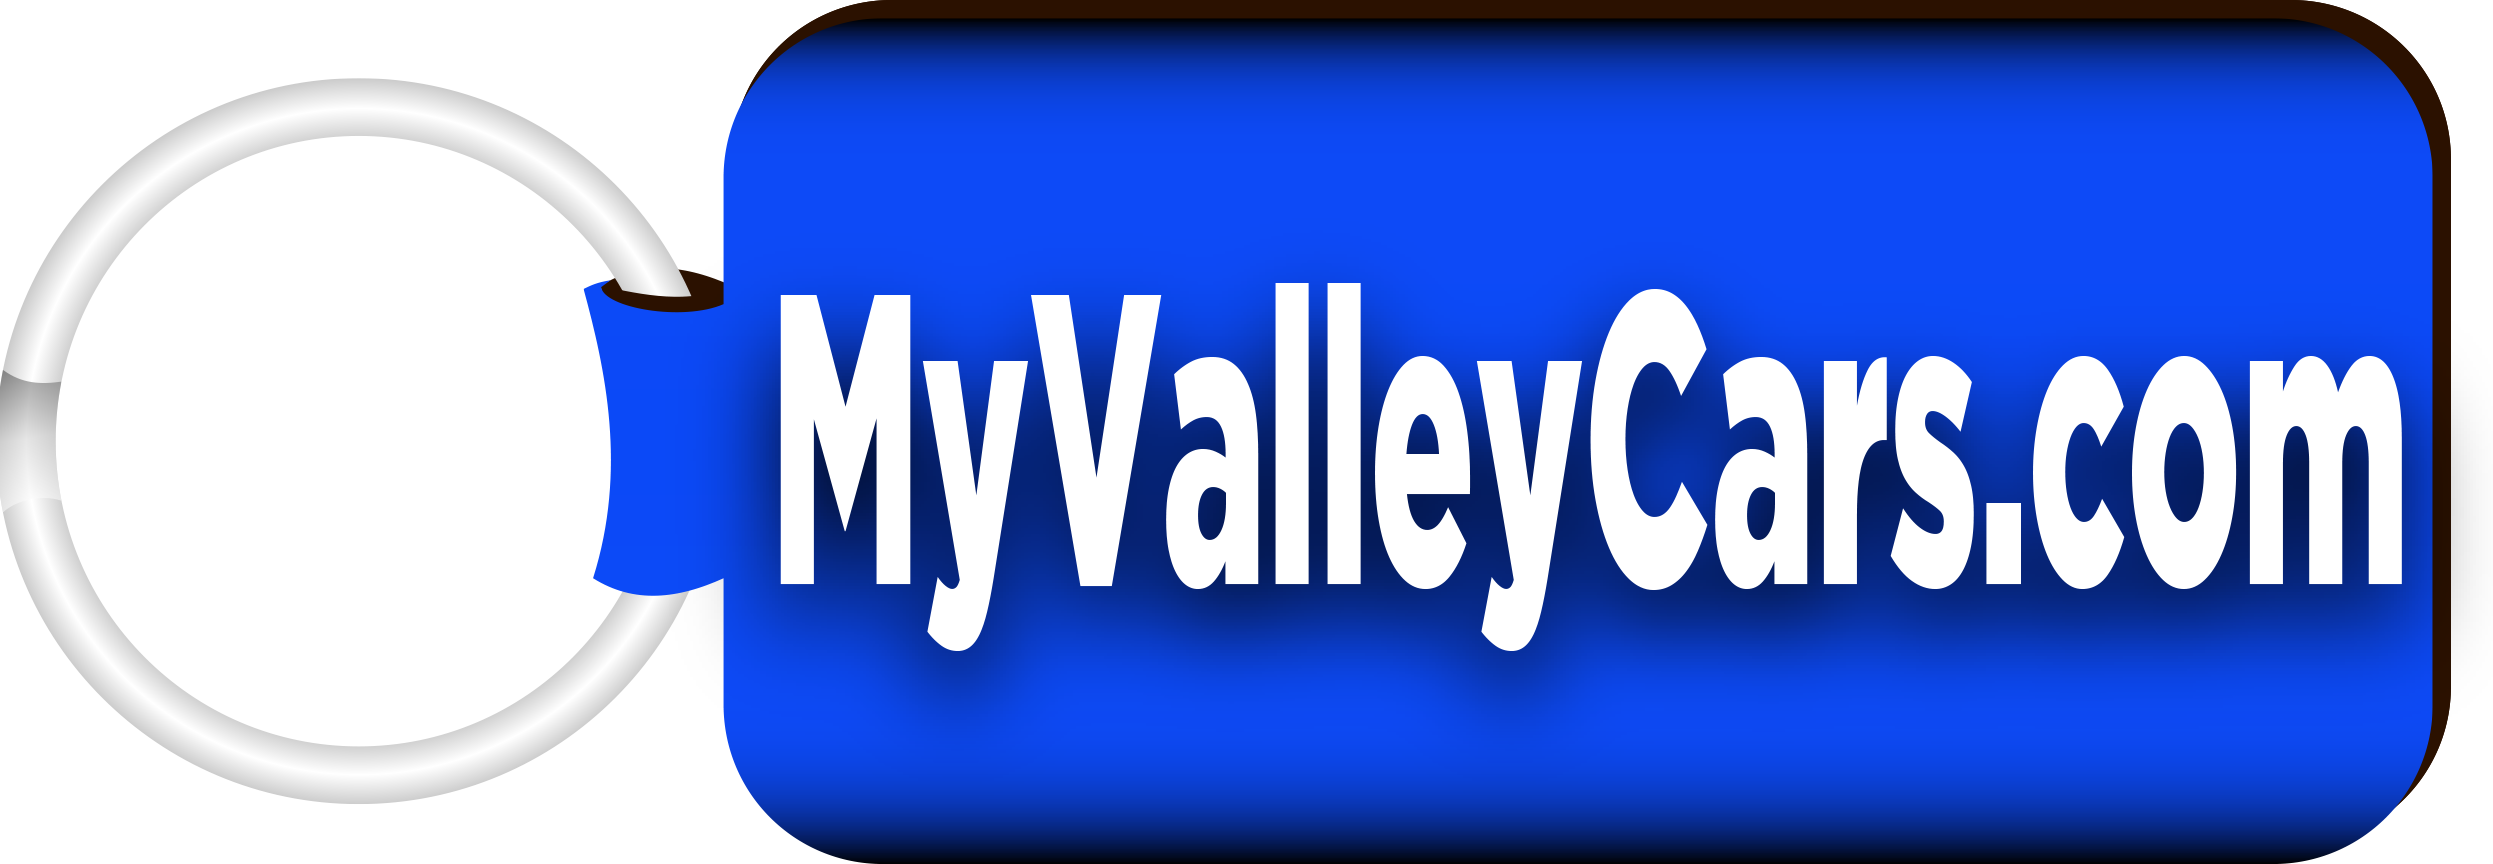 MyValleyCars